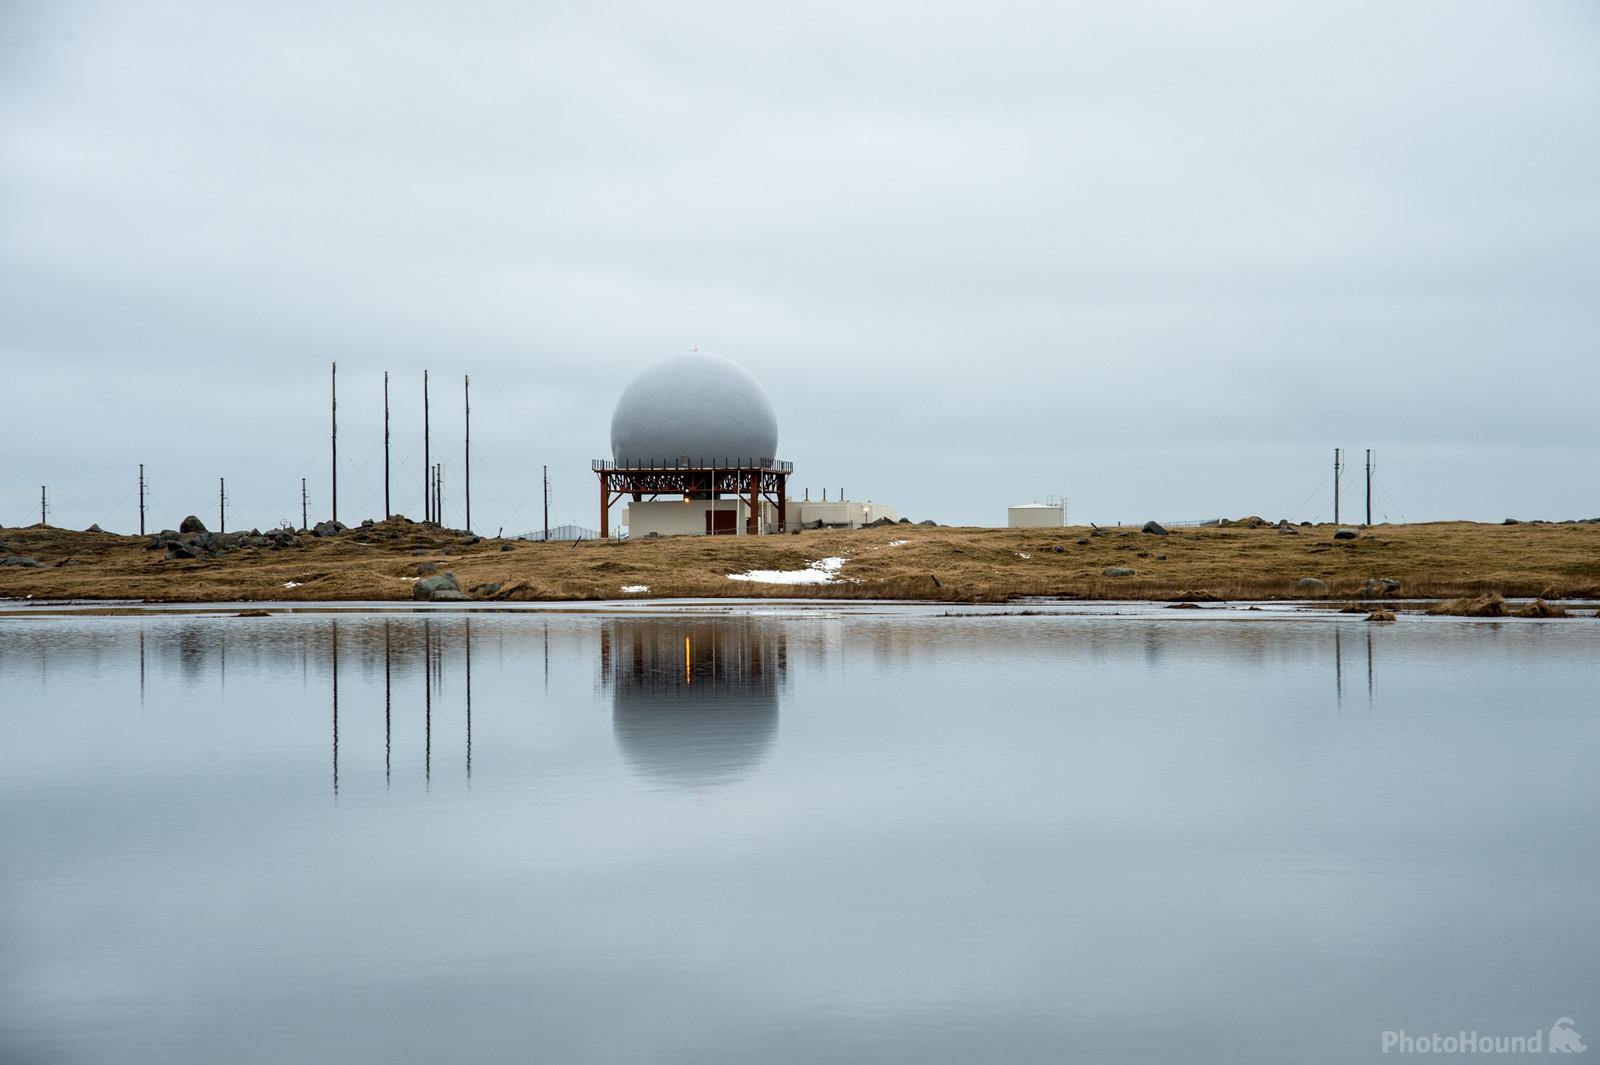 Radar station reflected in a pool